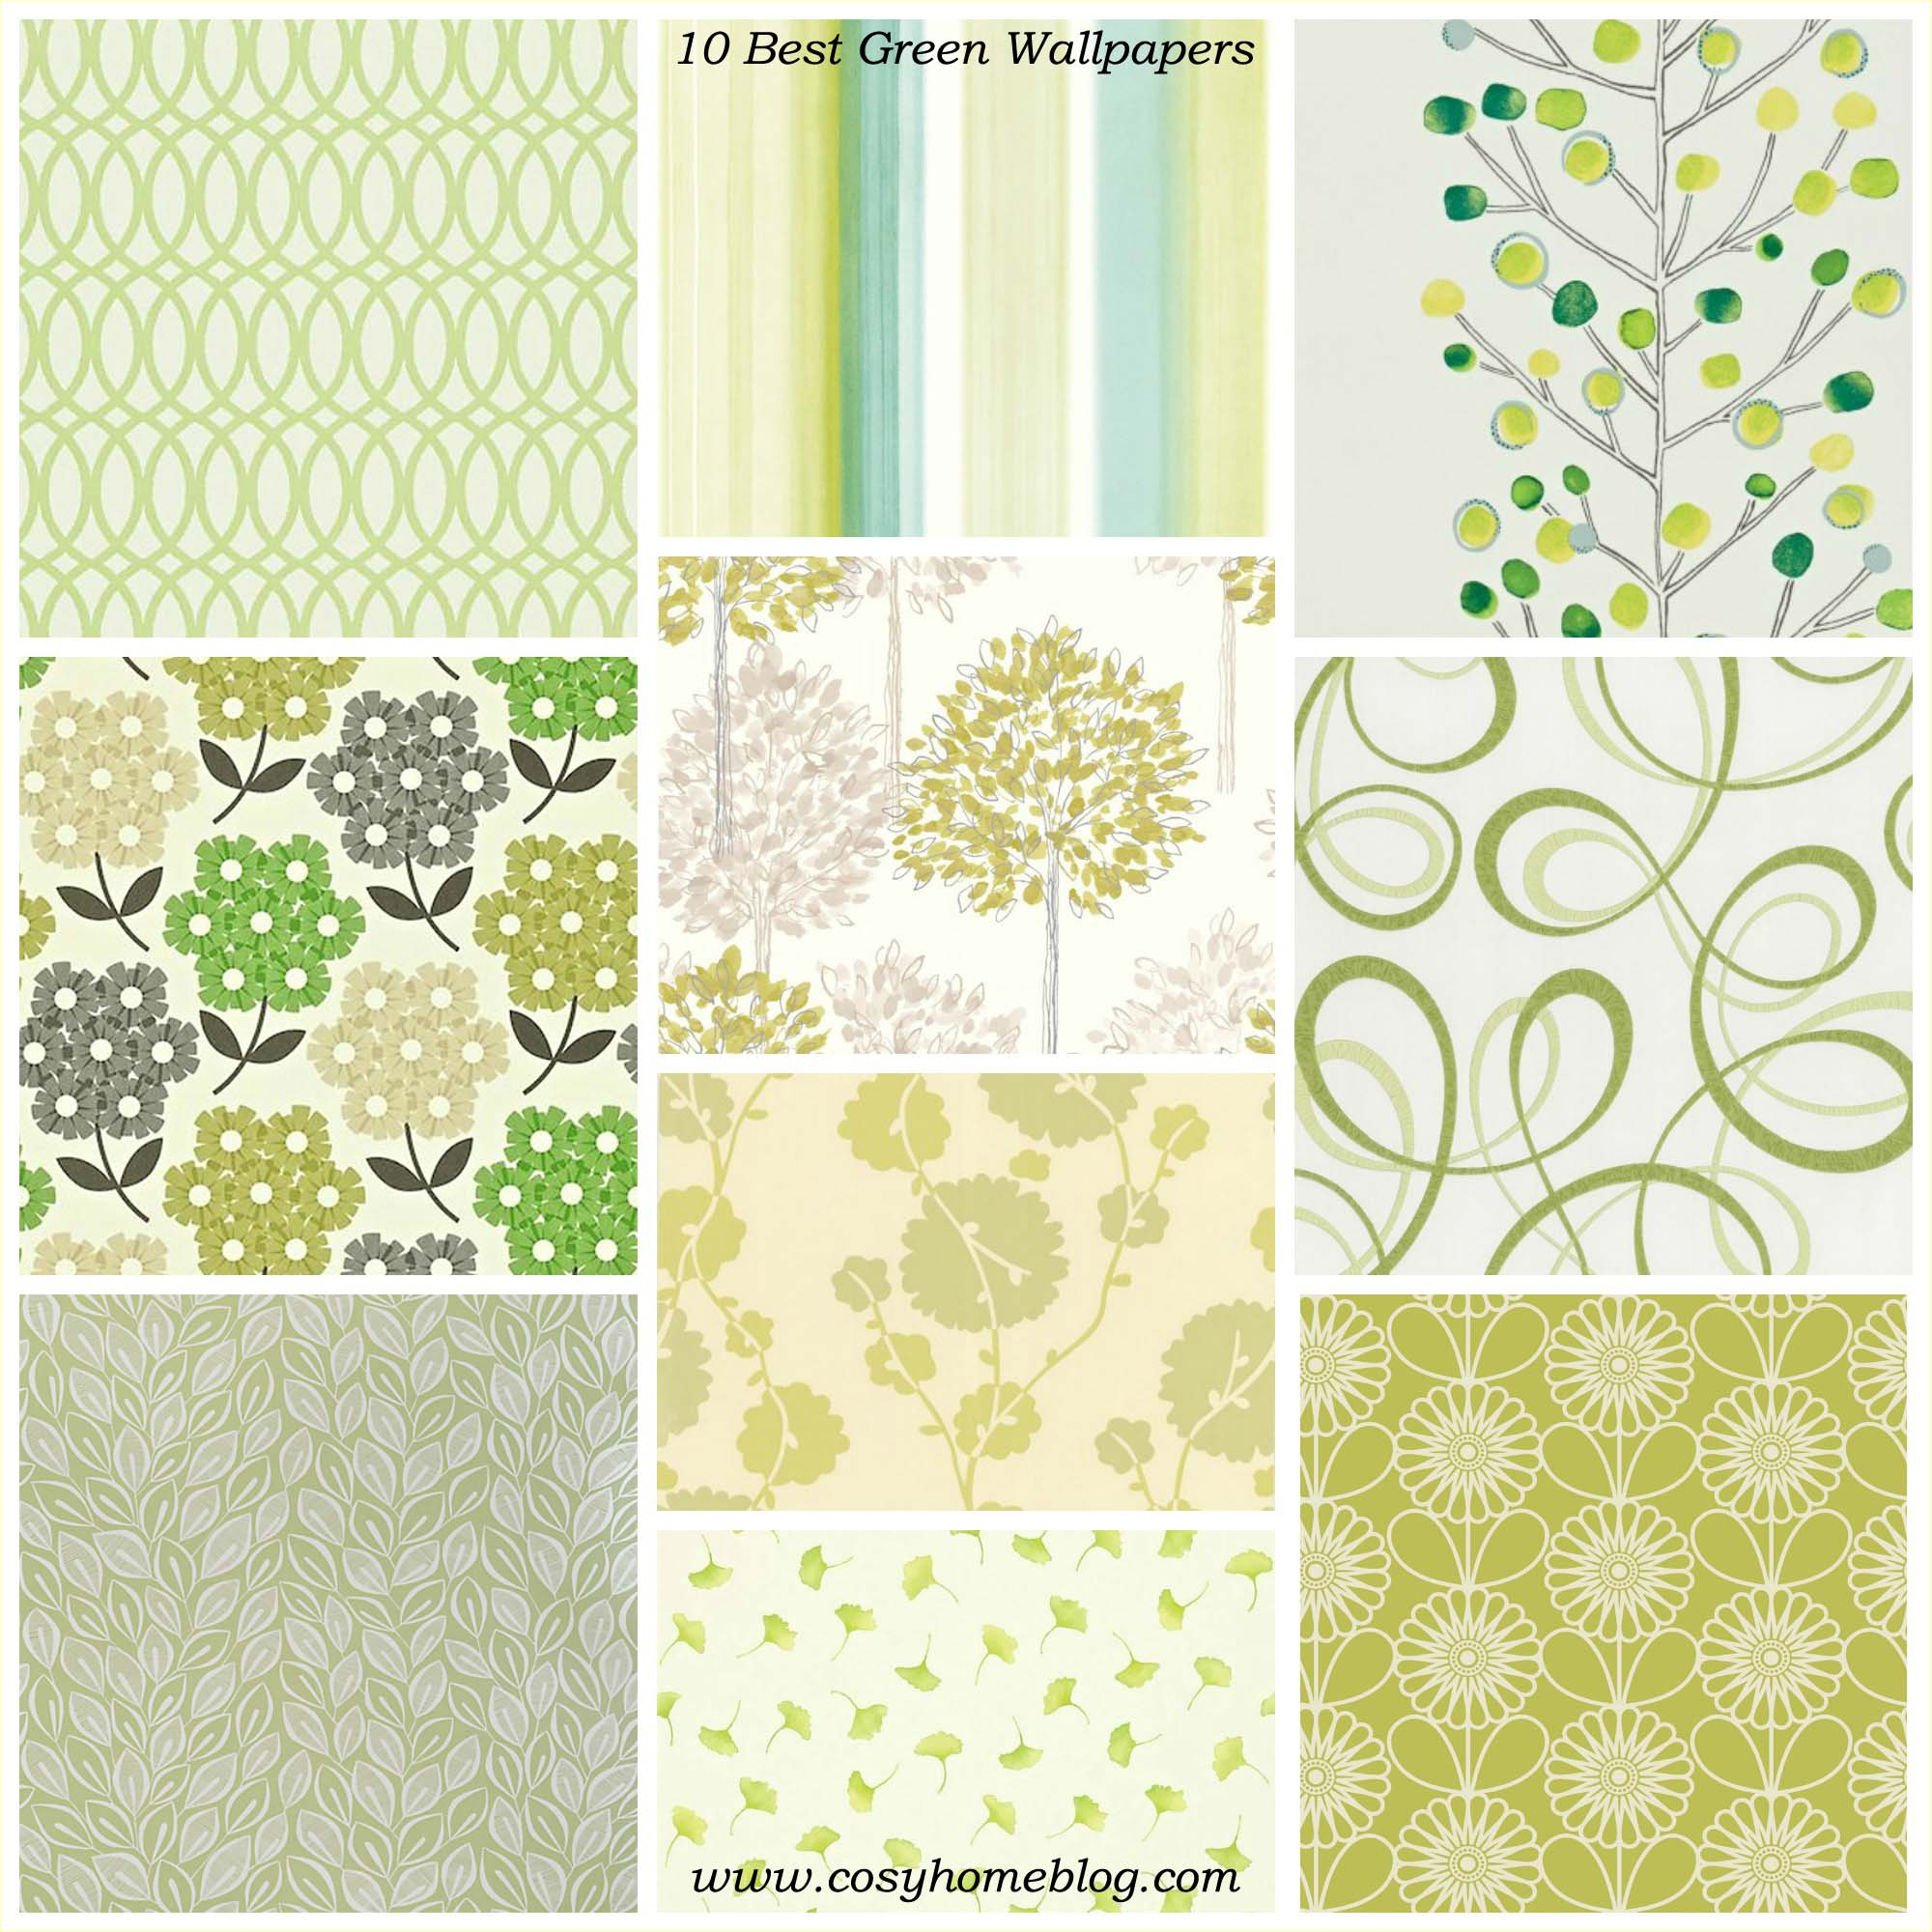 As a decorating colour, green can be fresh, calming and soothing, so ...: www.cosyhomeblog.com/2013/05/spring-greens-10-best-green-wallpaper...